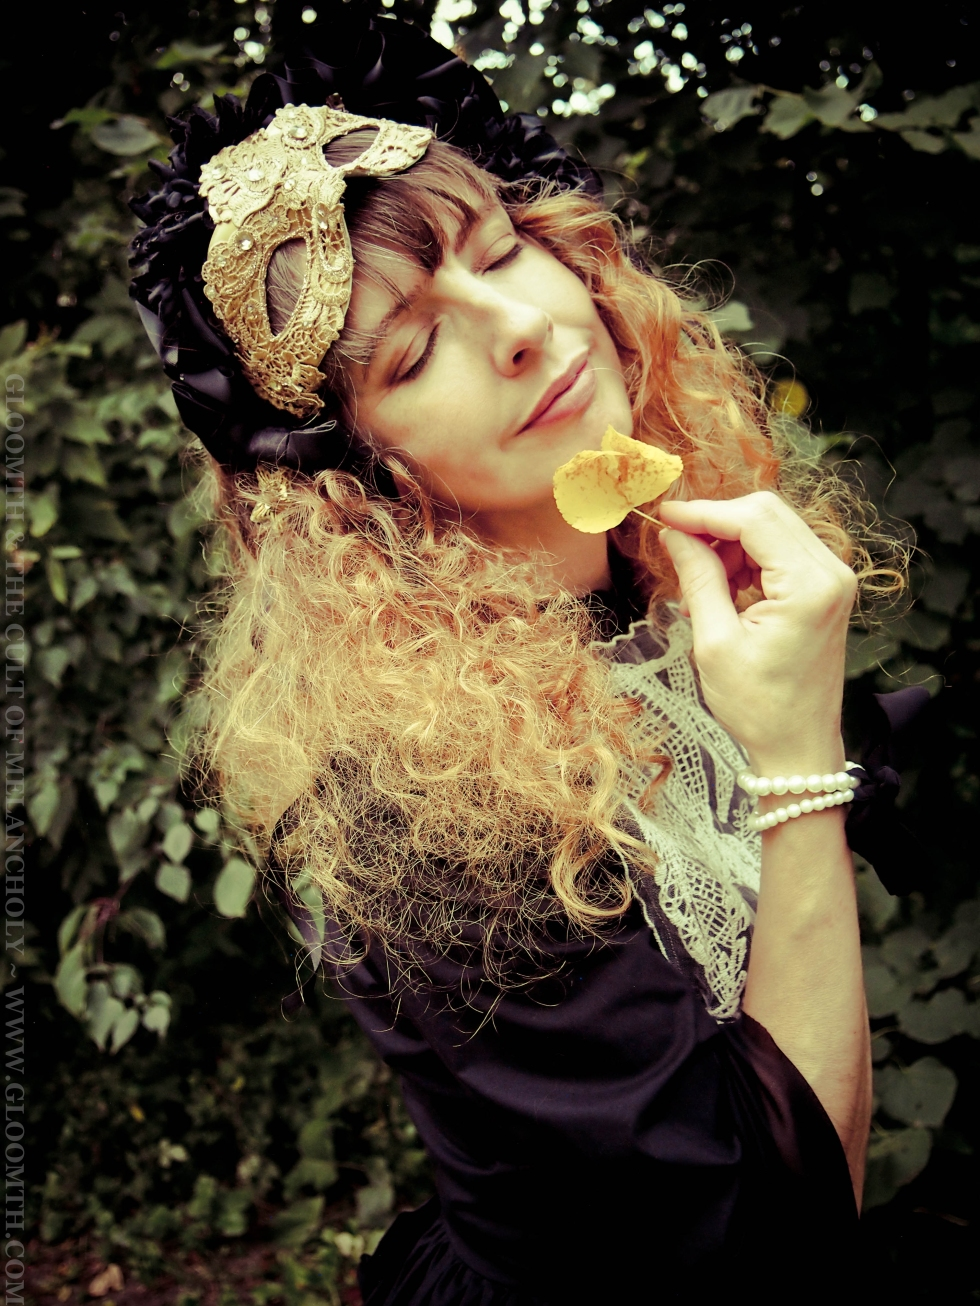 hedgewitch gothic photoshoot gloomth